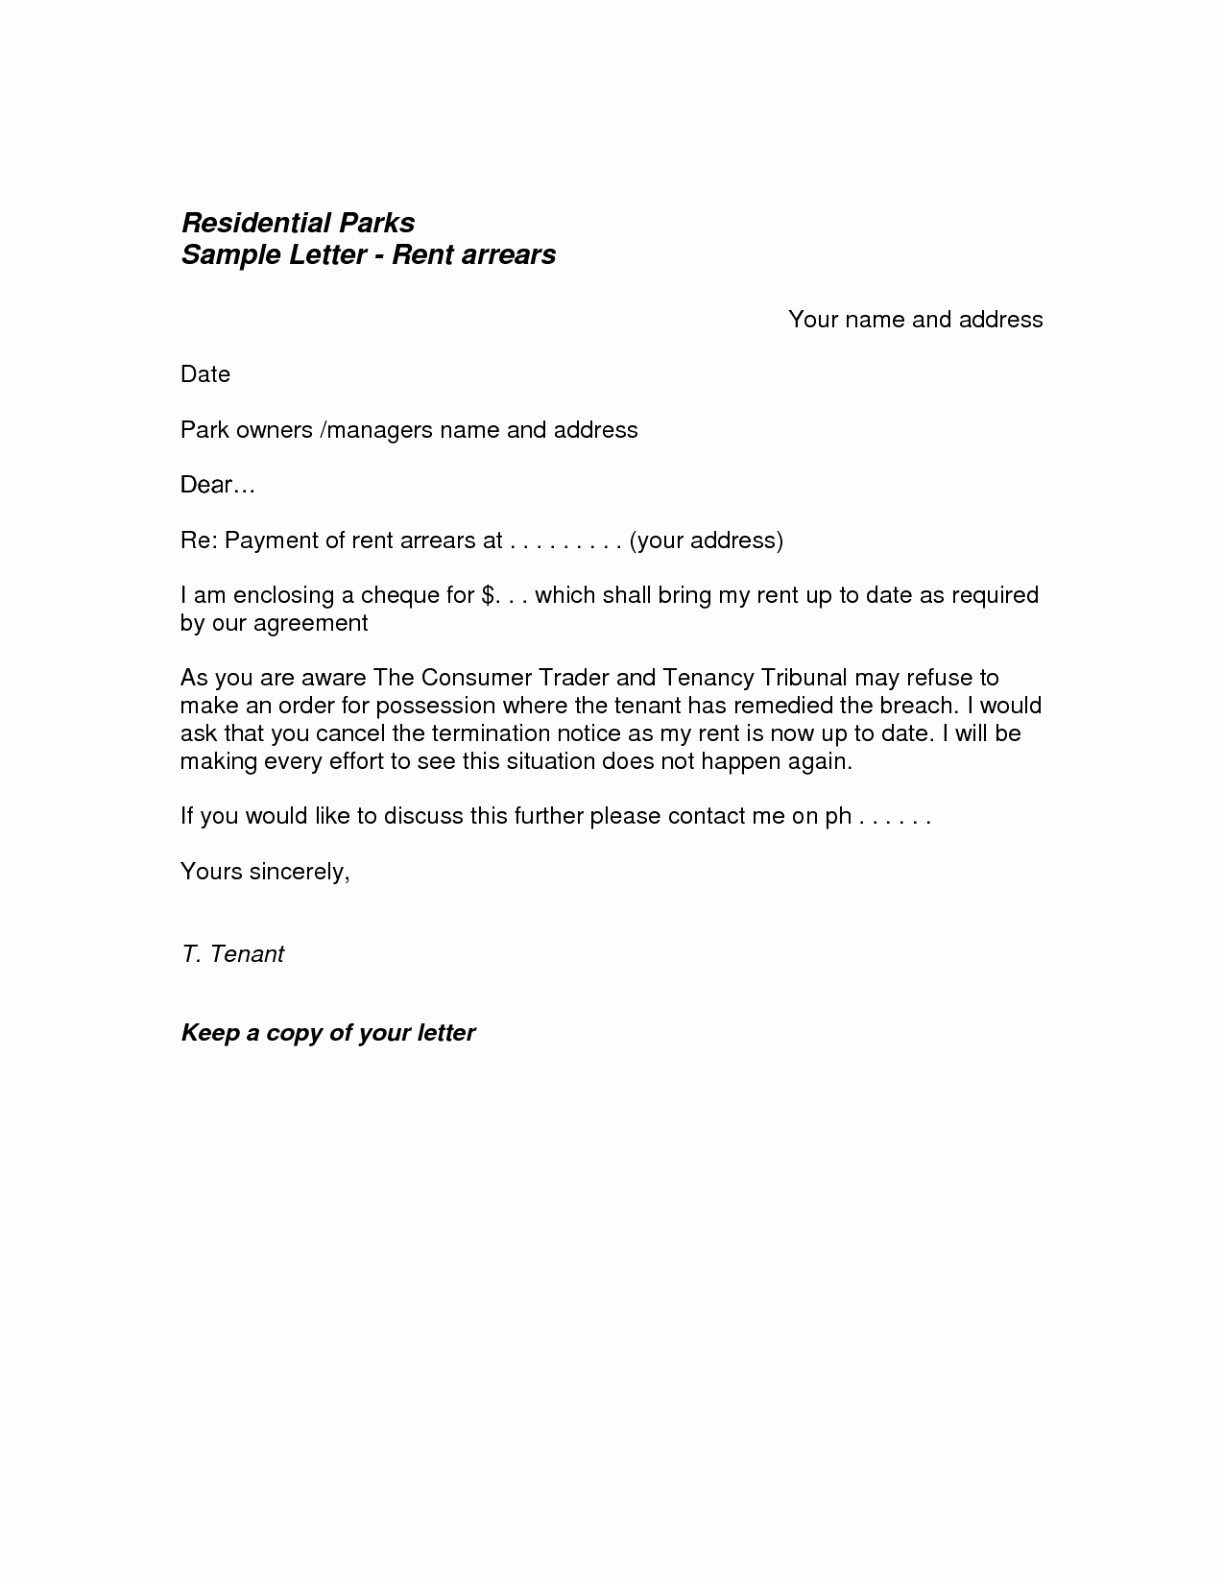 Termination Of Lease Agreement How To Write A Rental Agreement Letter Monzaberglauf Verband